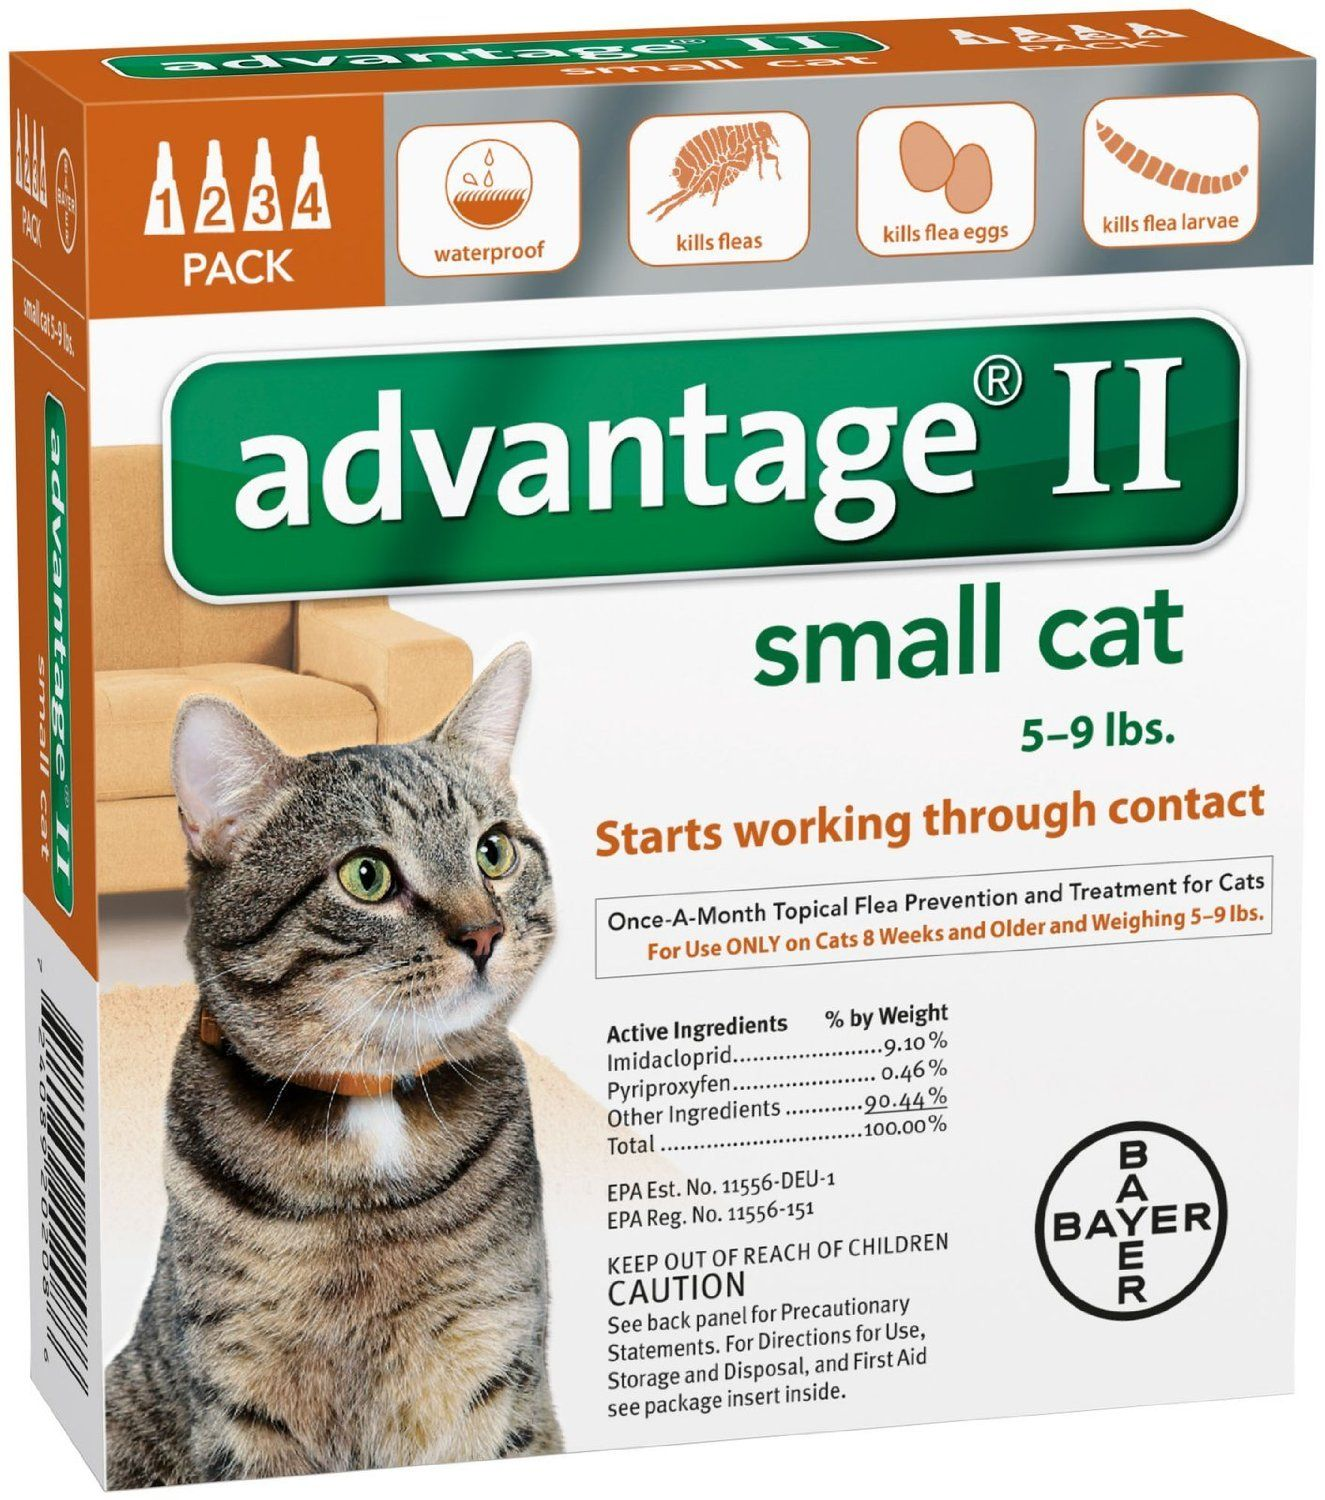 Advantage Ii Small Cat 4 Pack Want To Know More Click On The Image Cat Fleas Flea Treatment For Kittens Flea Medication For Dogs